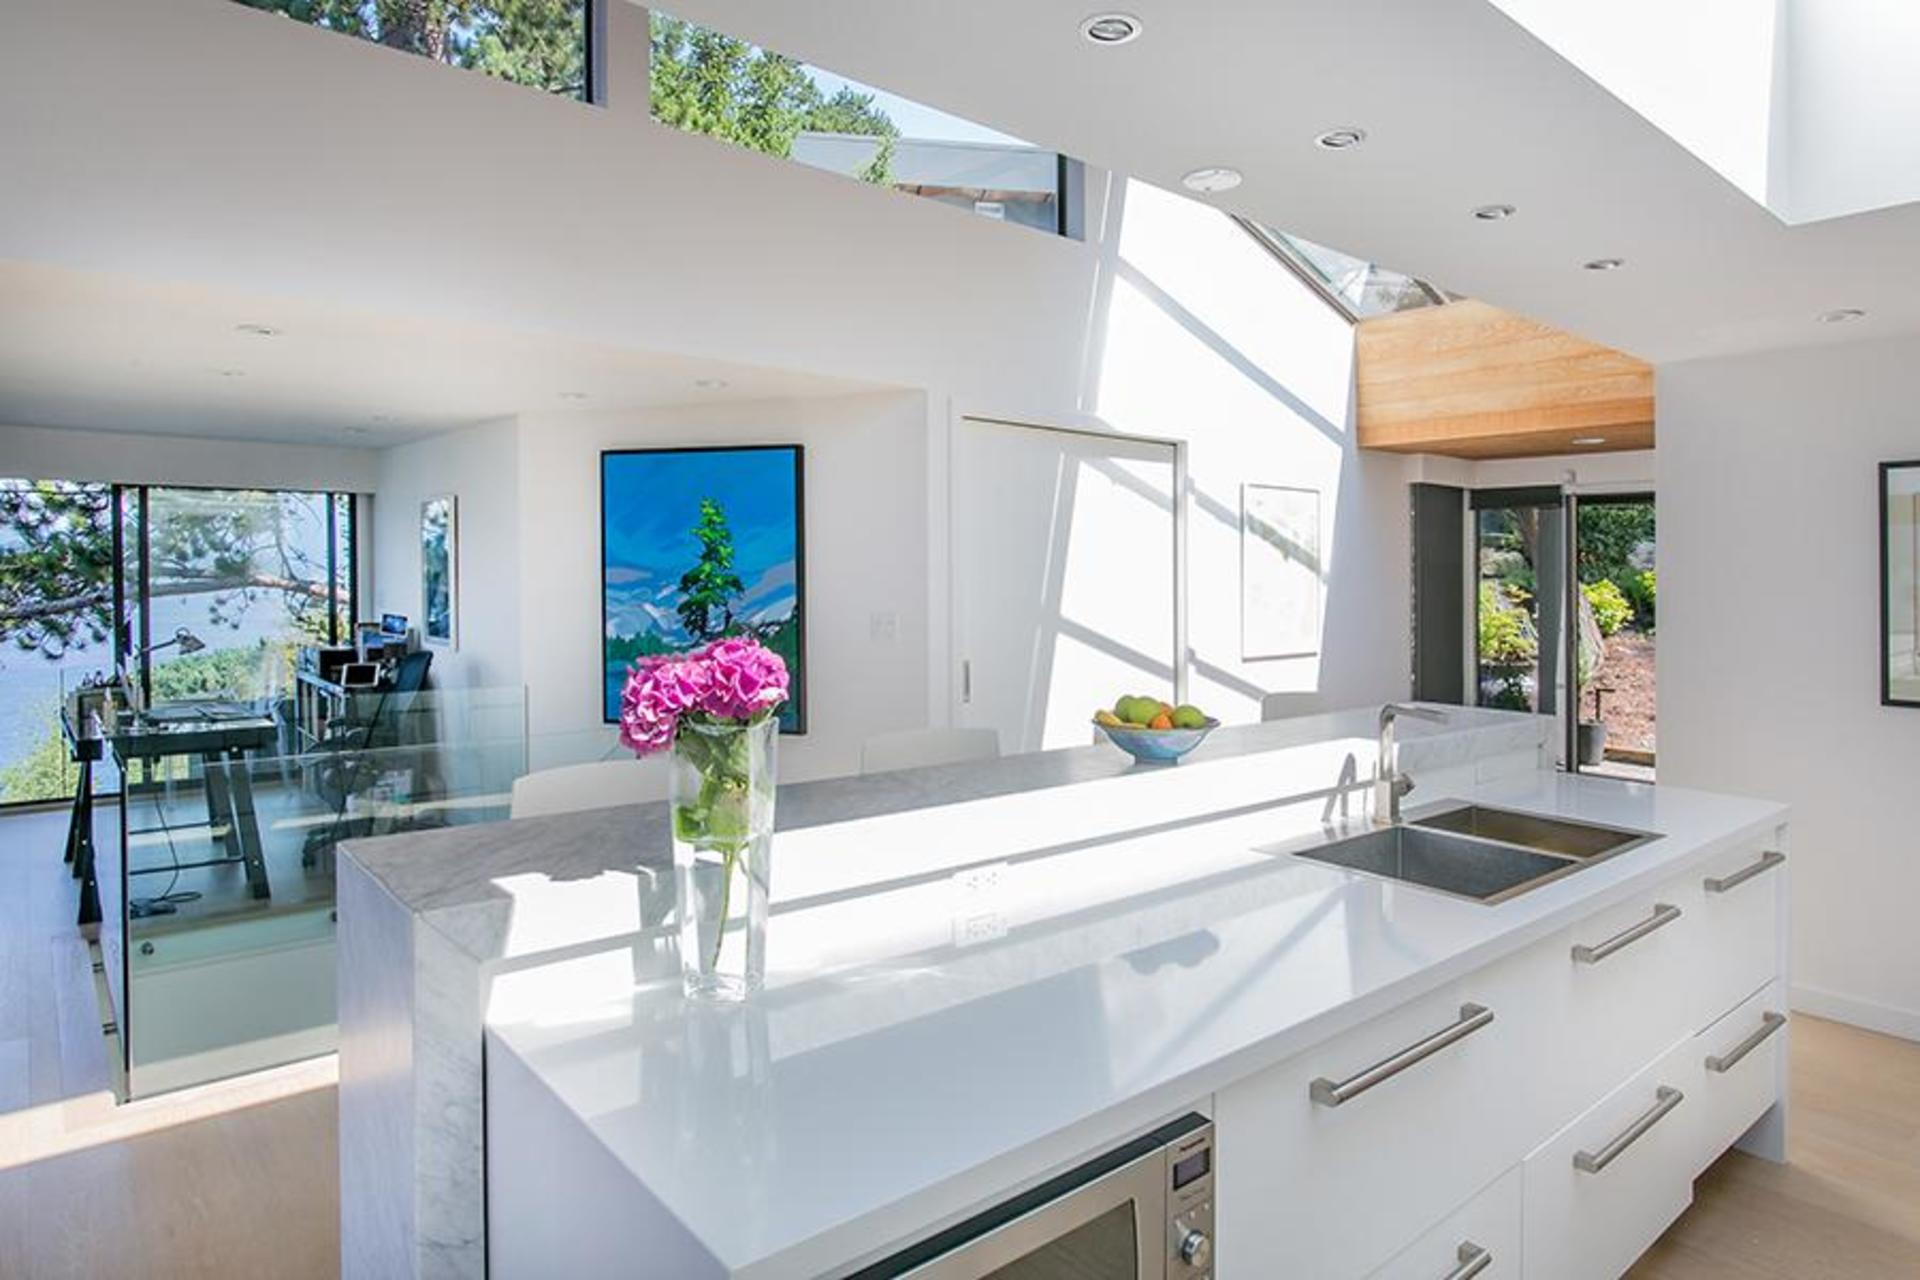 Kitchen at 6995 Hycroft, Whytecliff, West Vancouver